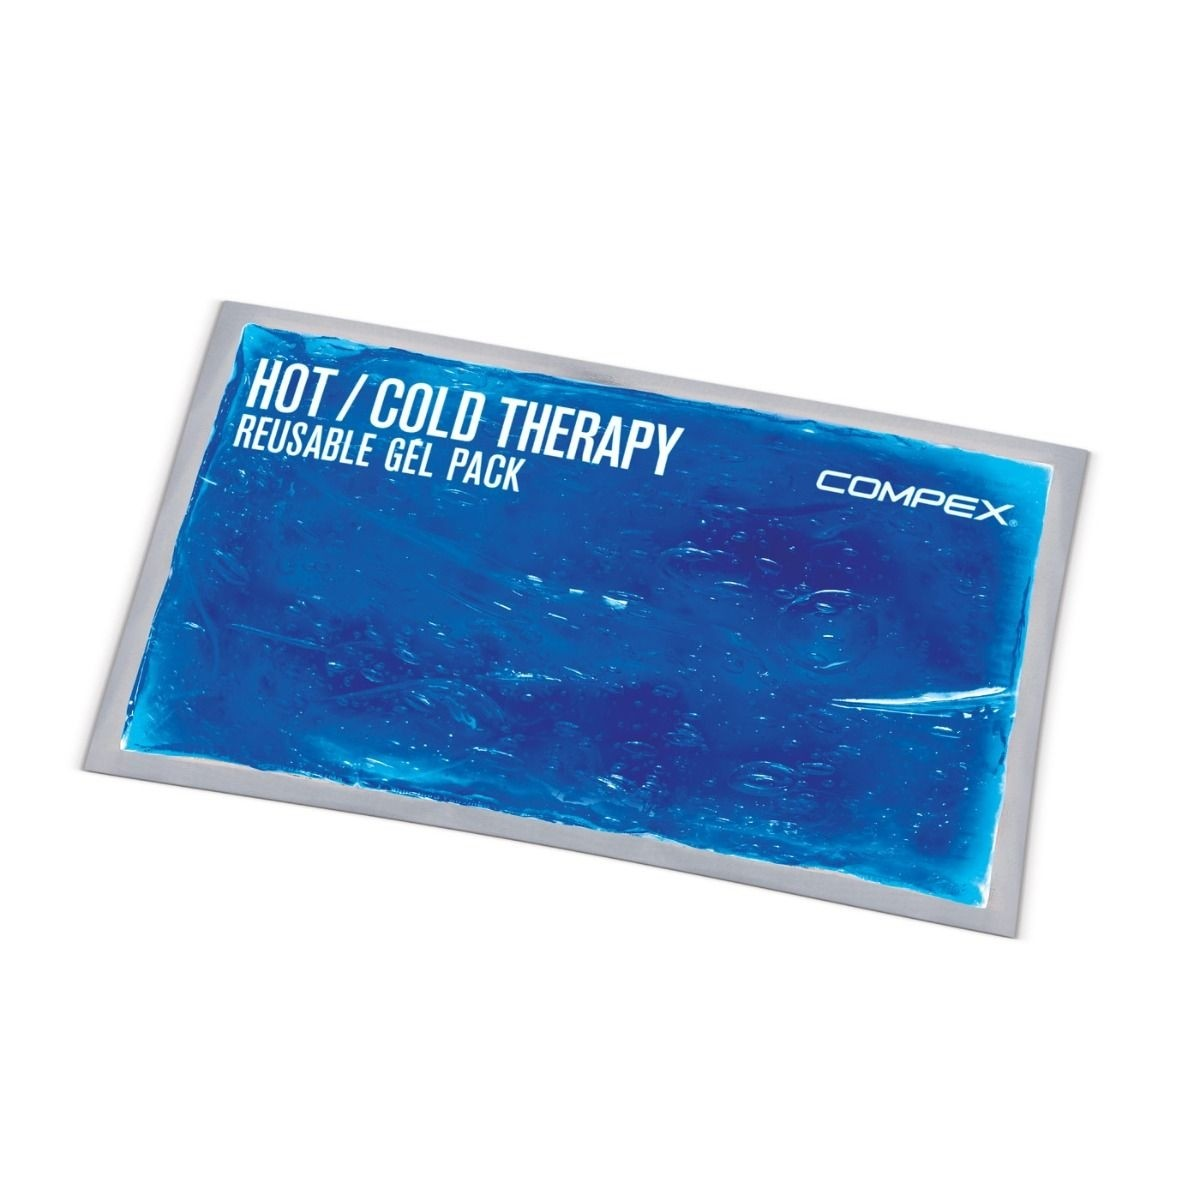 Compex reusable hot/cold gel pack box